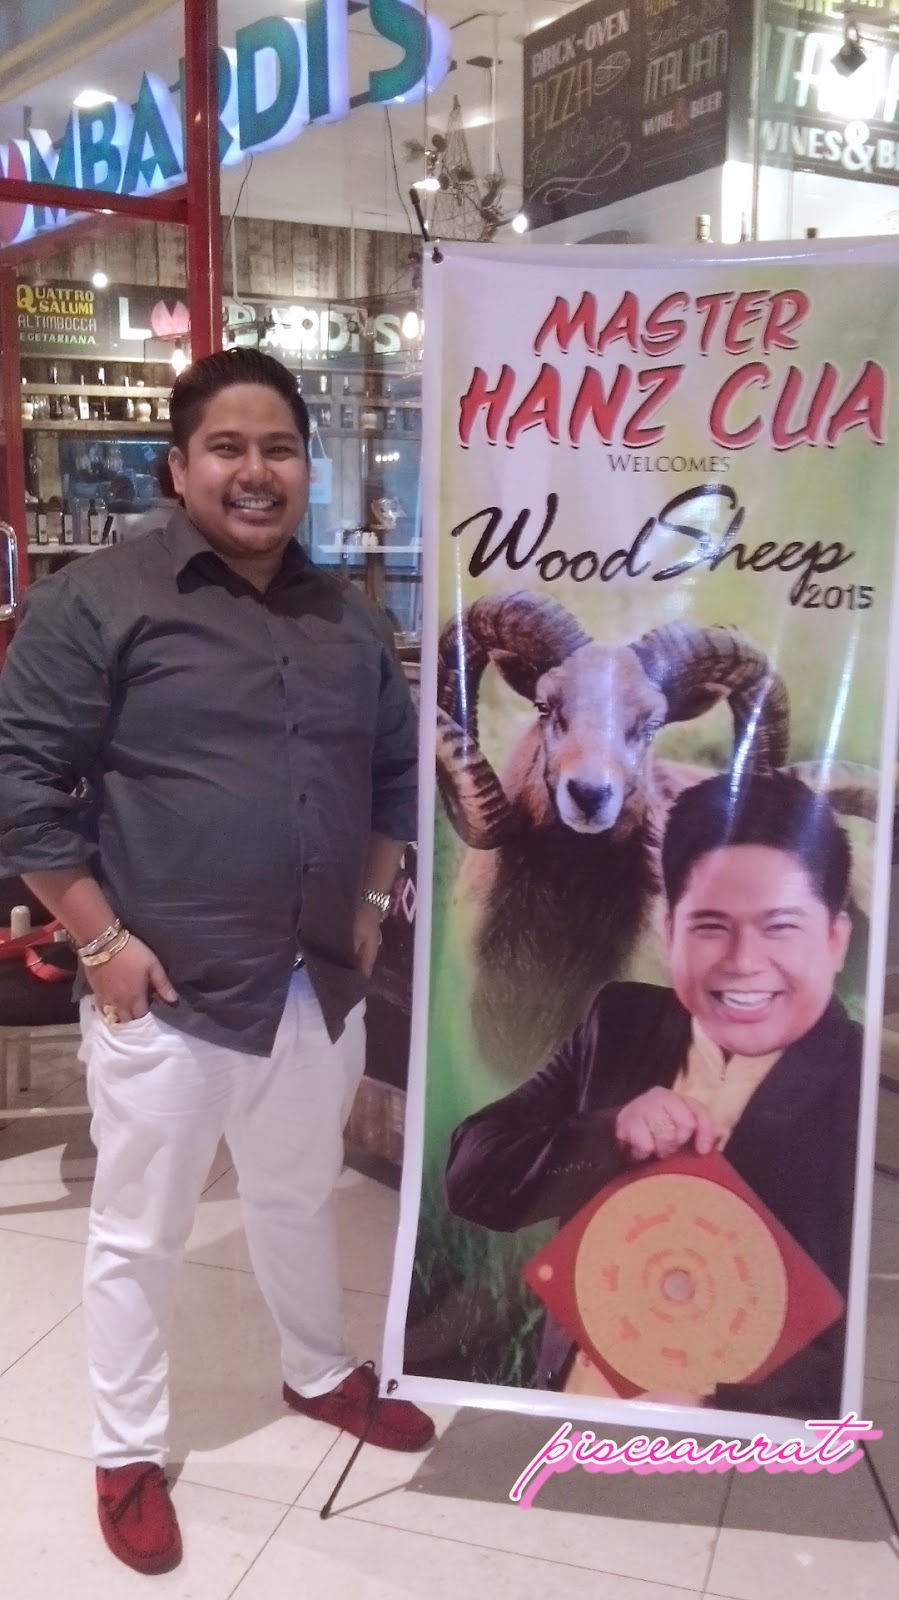 hanz cua, feng shui, 2015, year of the wood sheep,